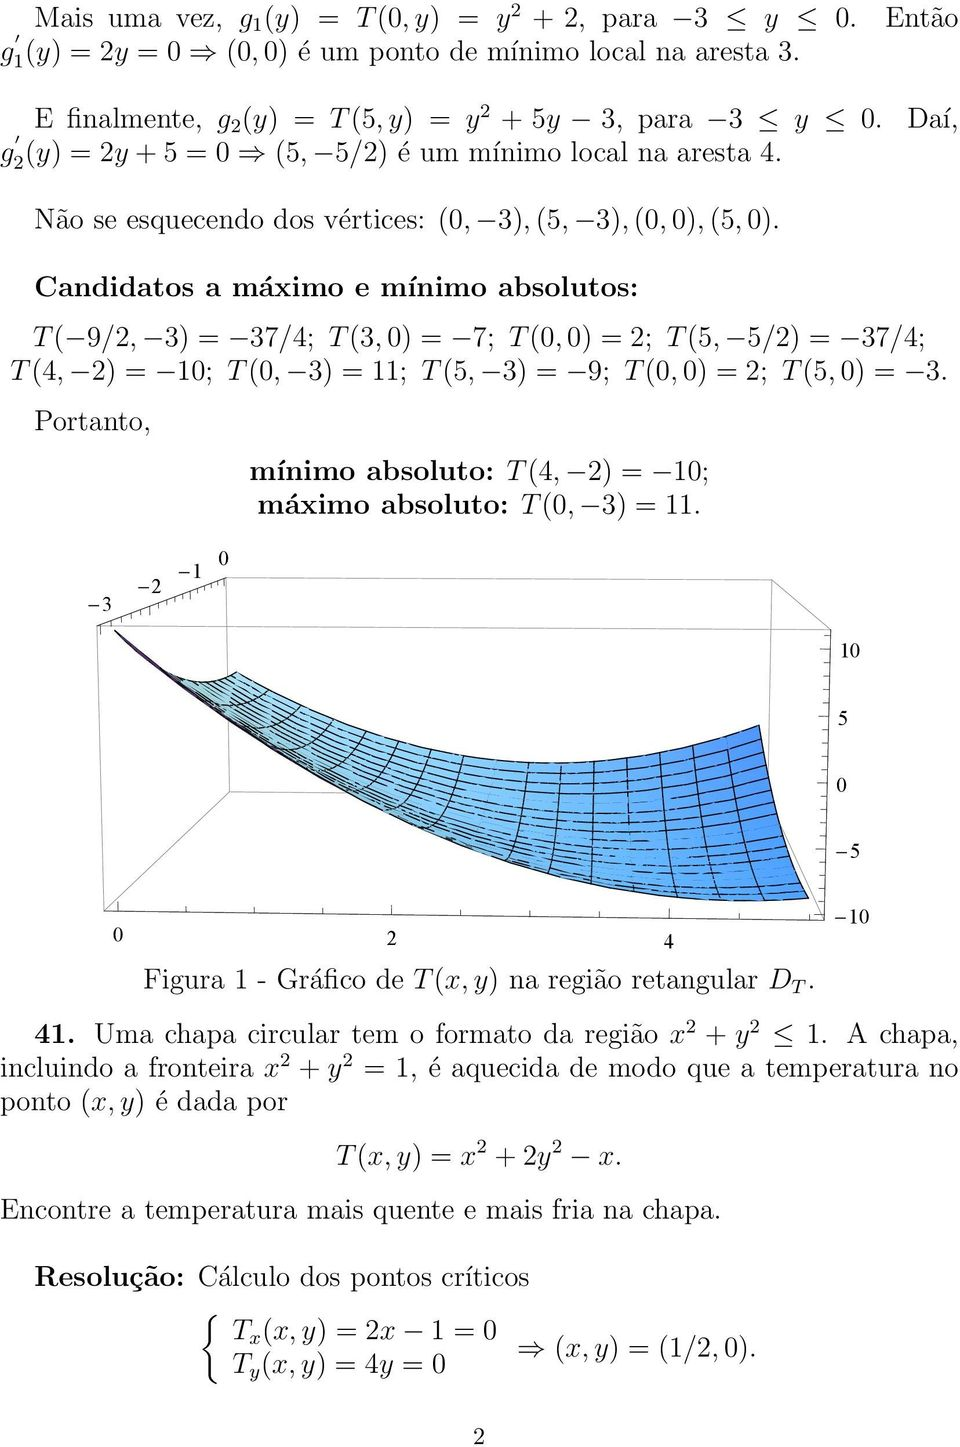 Candidatos a máximo e mínimo absolutos: T ( 9/, 3) = 37/4; T (3, 0) = 7; T (0, 0) = ; T (5, 5/) = 37/4; T (4, ) = 10; T (0, 3) = 11; T (5, 3) = 9; T (0, 0) = ; T (5, 0) = 3.